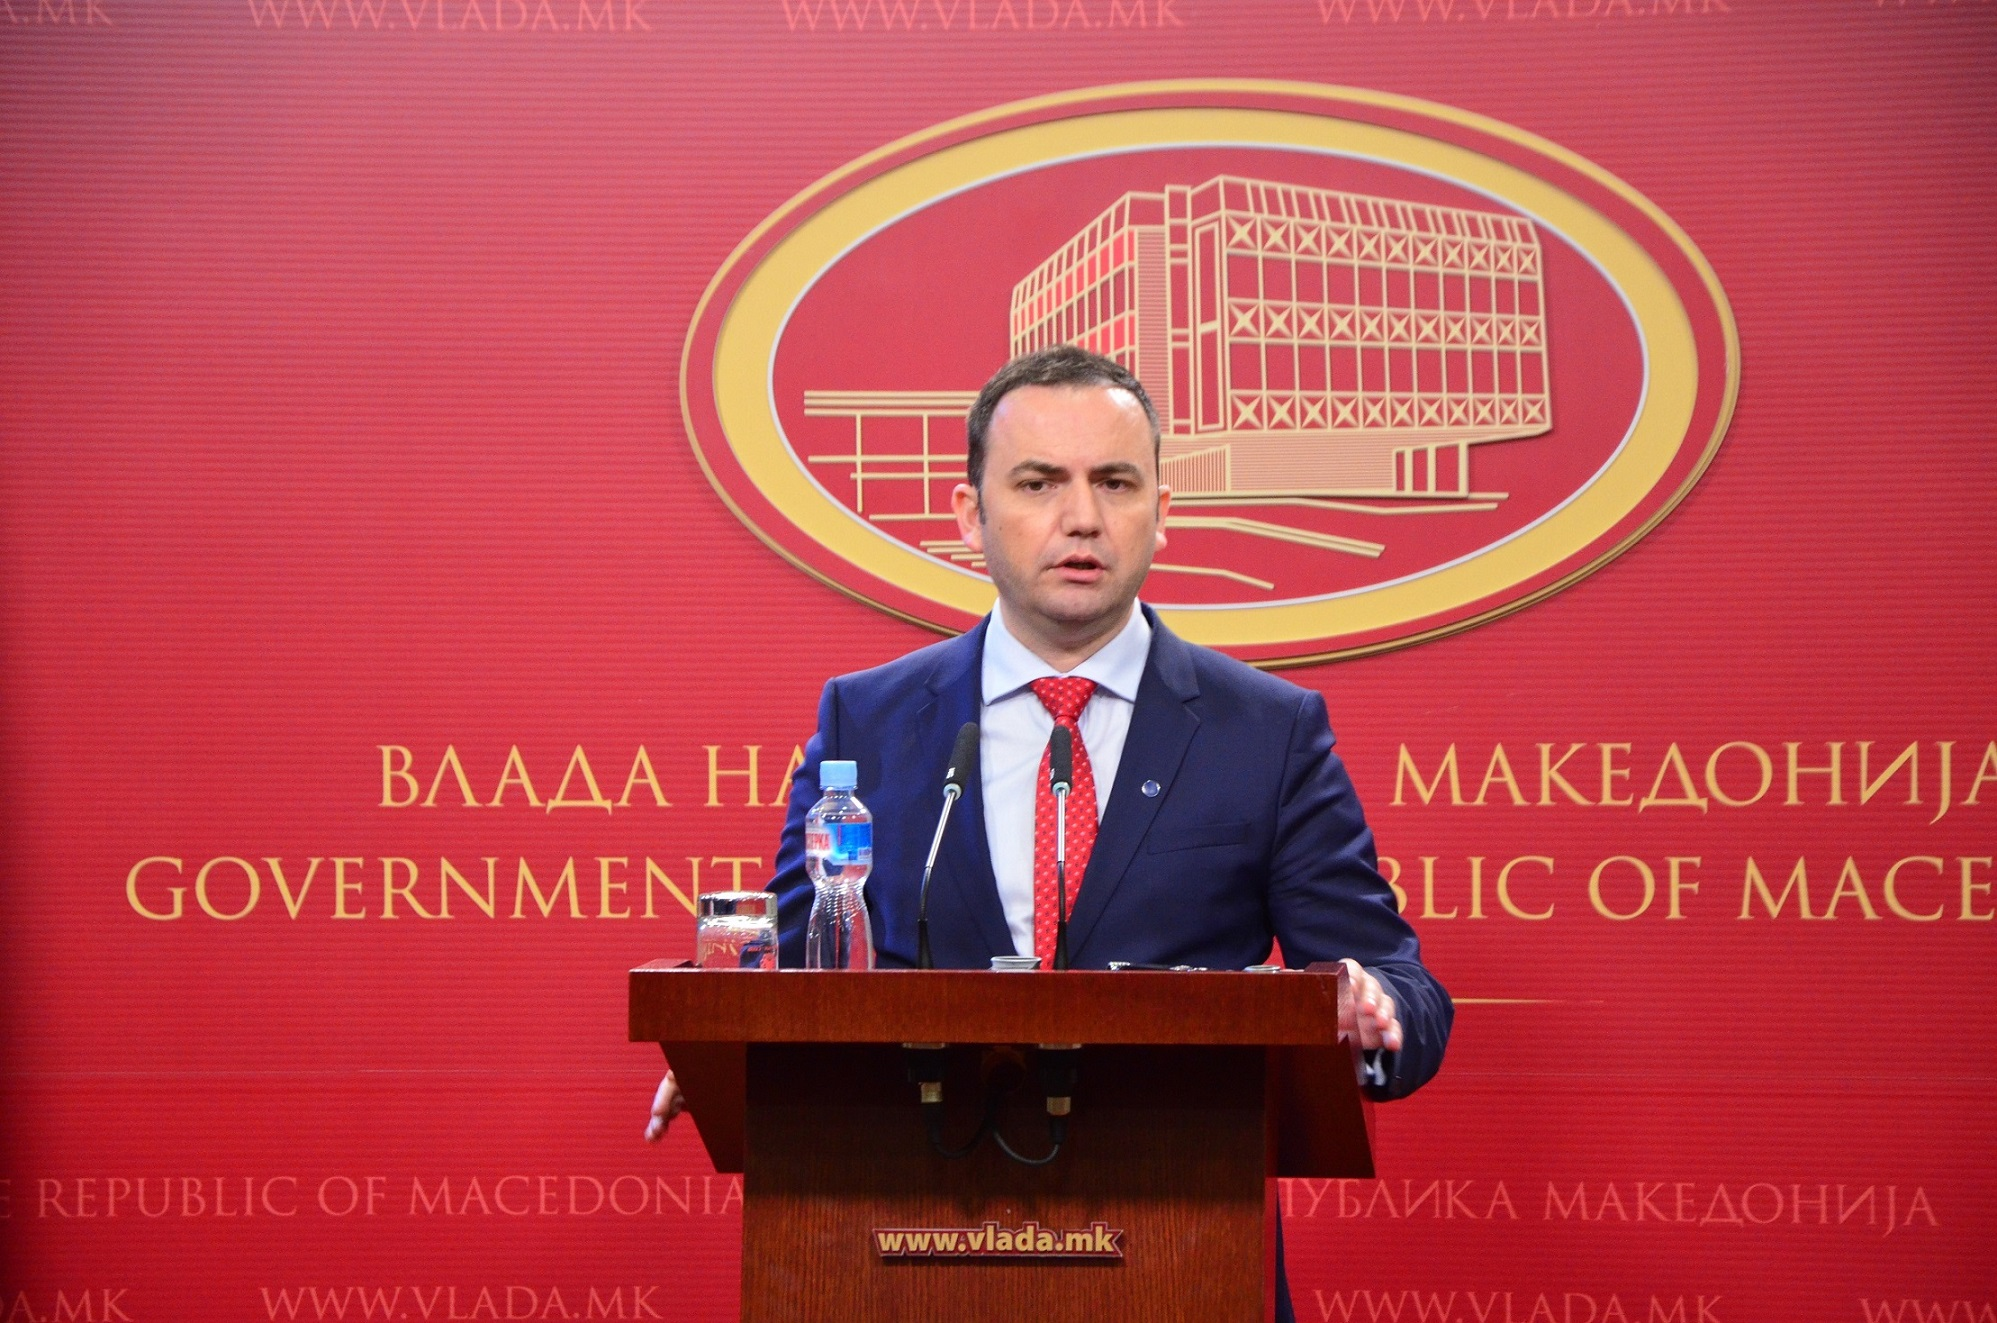 EU insists on the reform, says FYROM's deputy Prime Minister for European Affairs